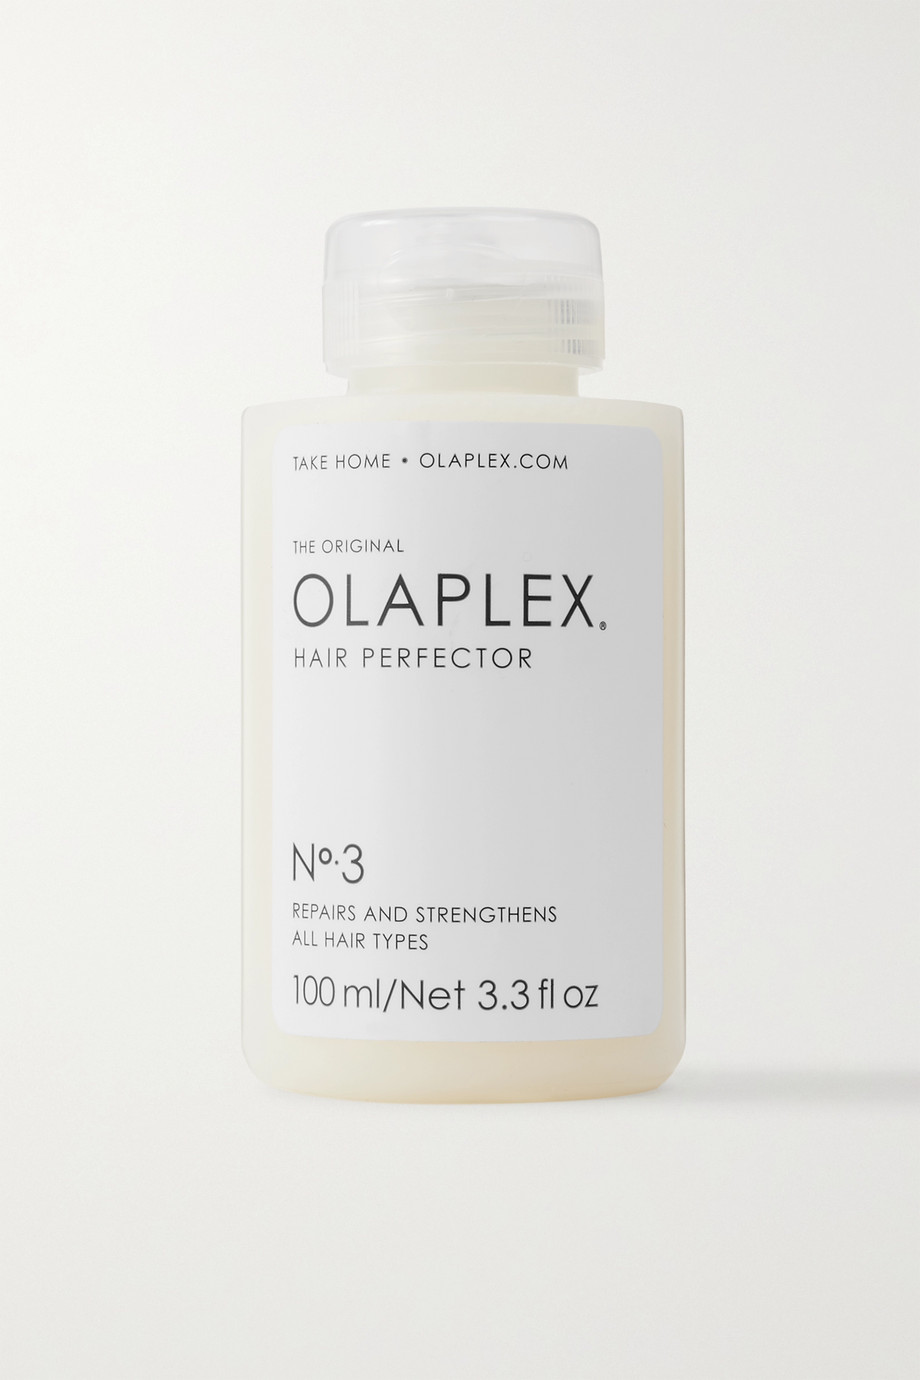 OLAPLEX No.3 Hair Perfector, 100ml